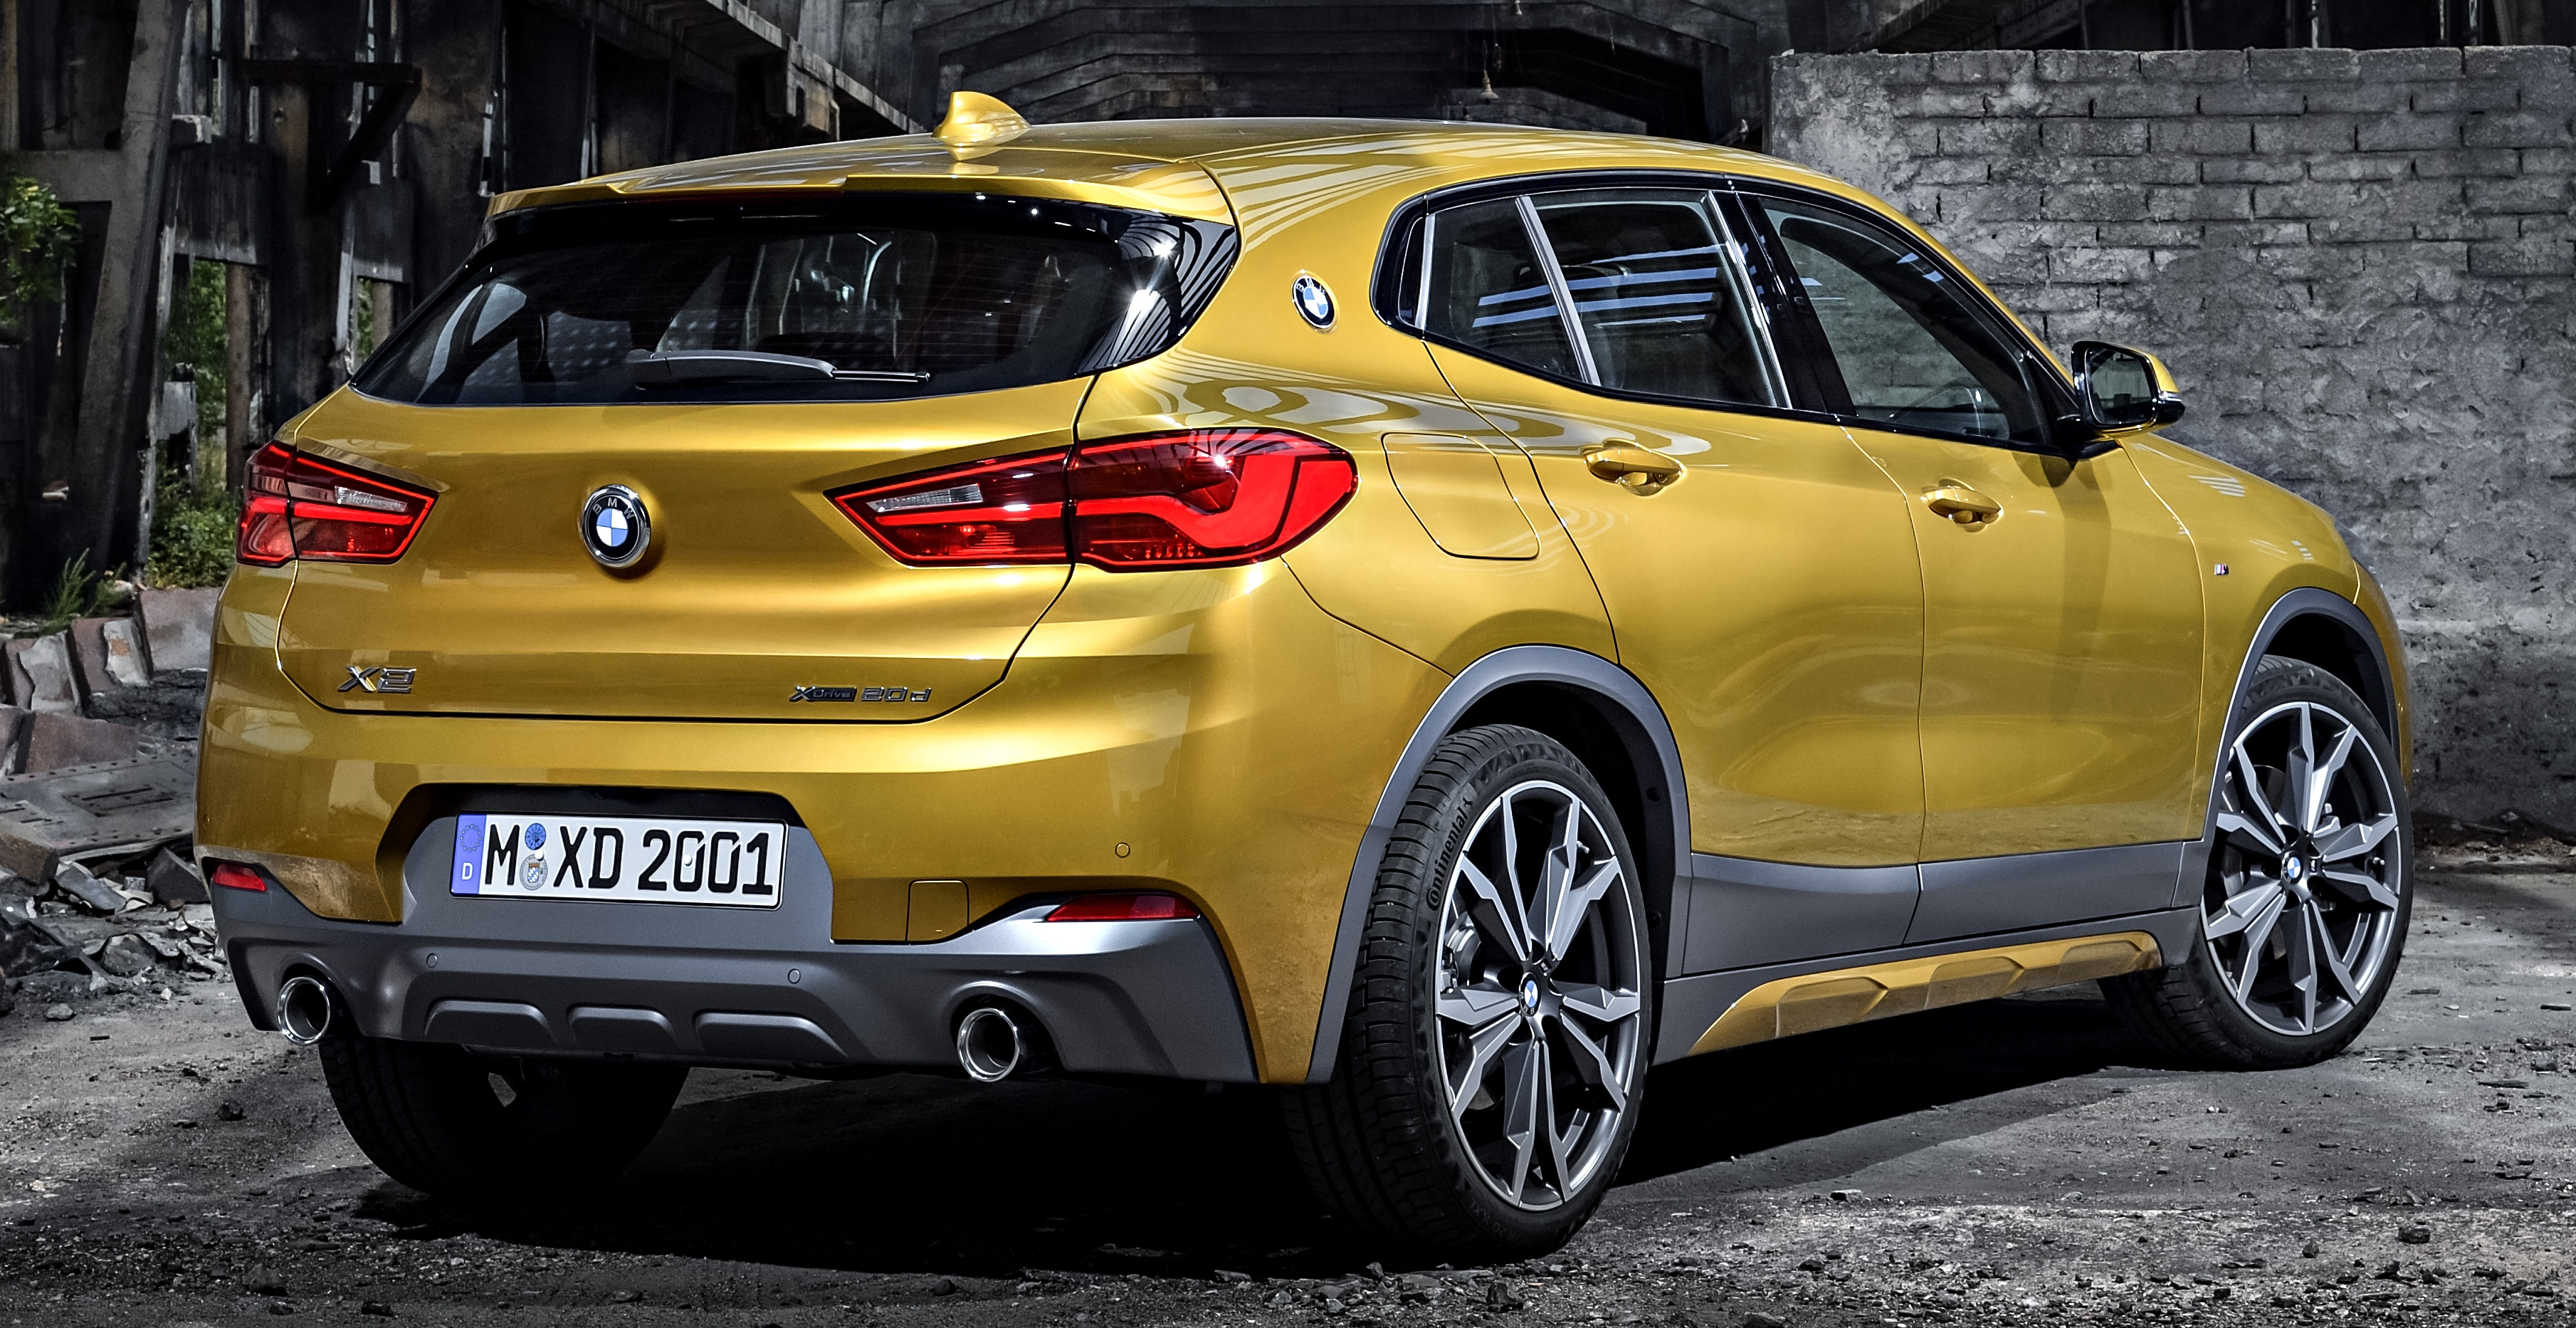 f39 bmw x2 unveiled with new m sport x package paul tan image 728951. Black Bedroom Furniture Sets. Home Design Ideas